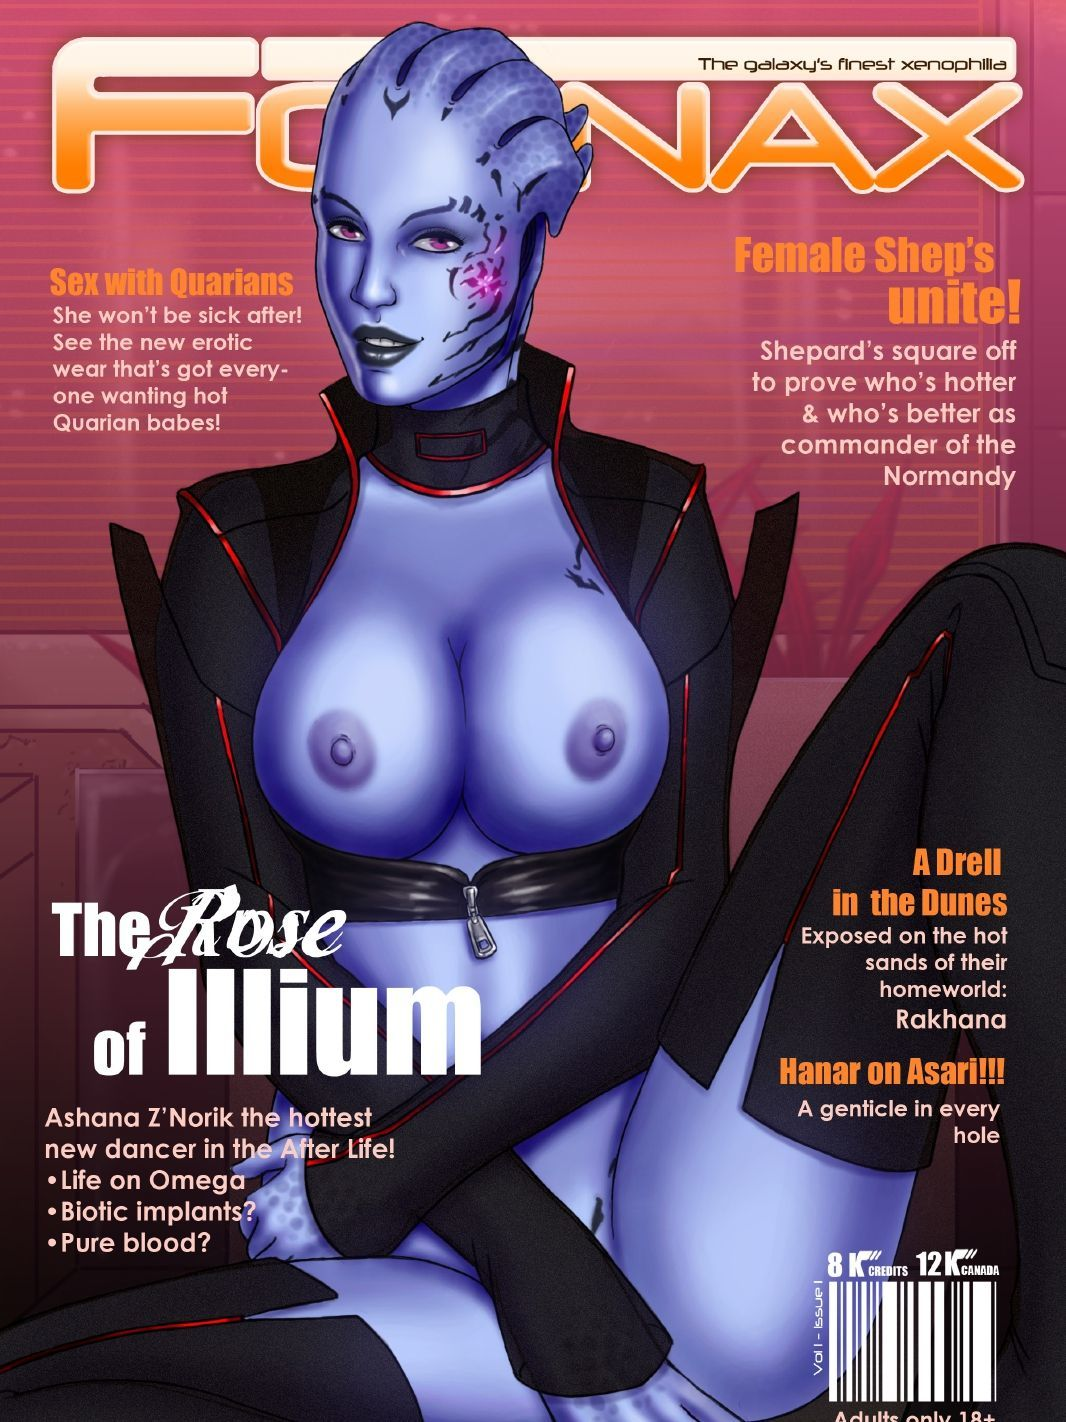 FORNAX_The_galaxys_finest_xenophilia_(Mass_Effect) comix.jpg